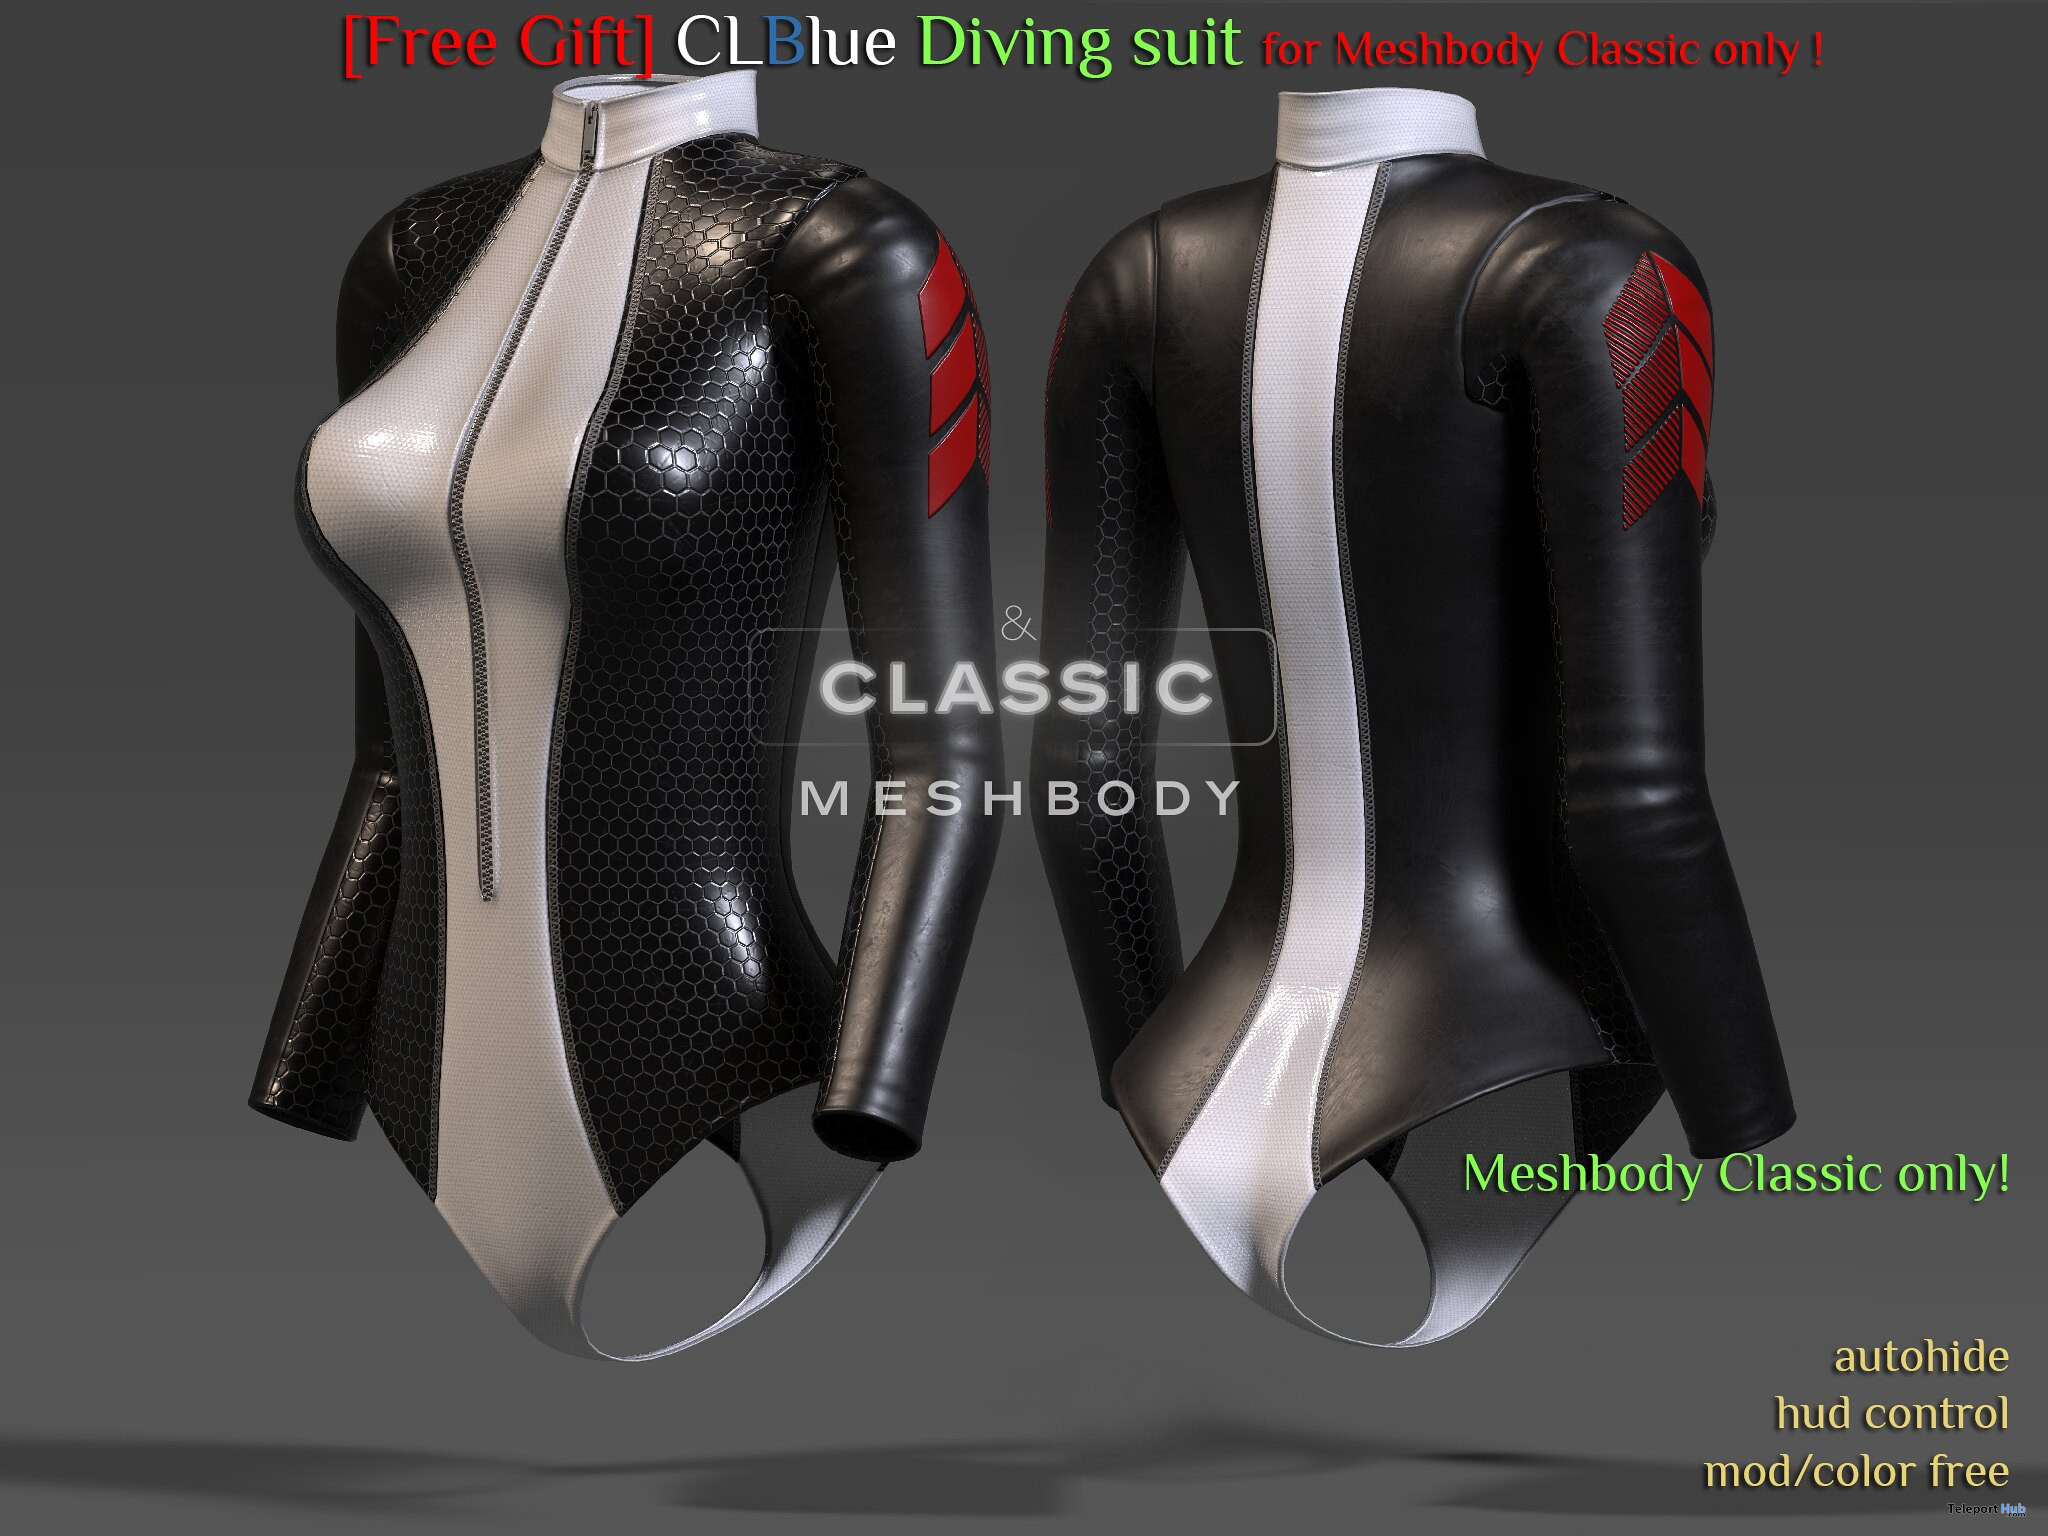 Diving Suit For Mesh Body Classic August 2021 Gift by CLBlue - Teleport Hub - teleporthub.com